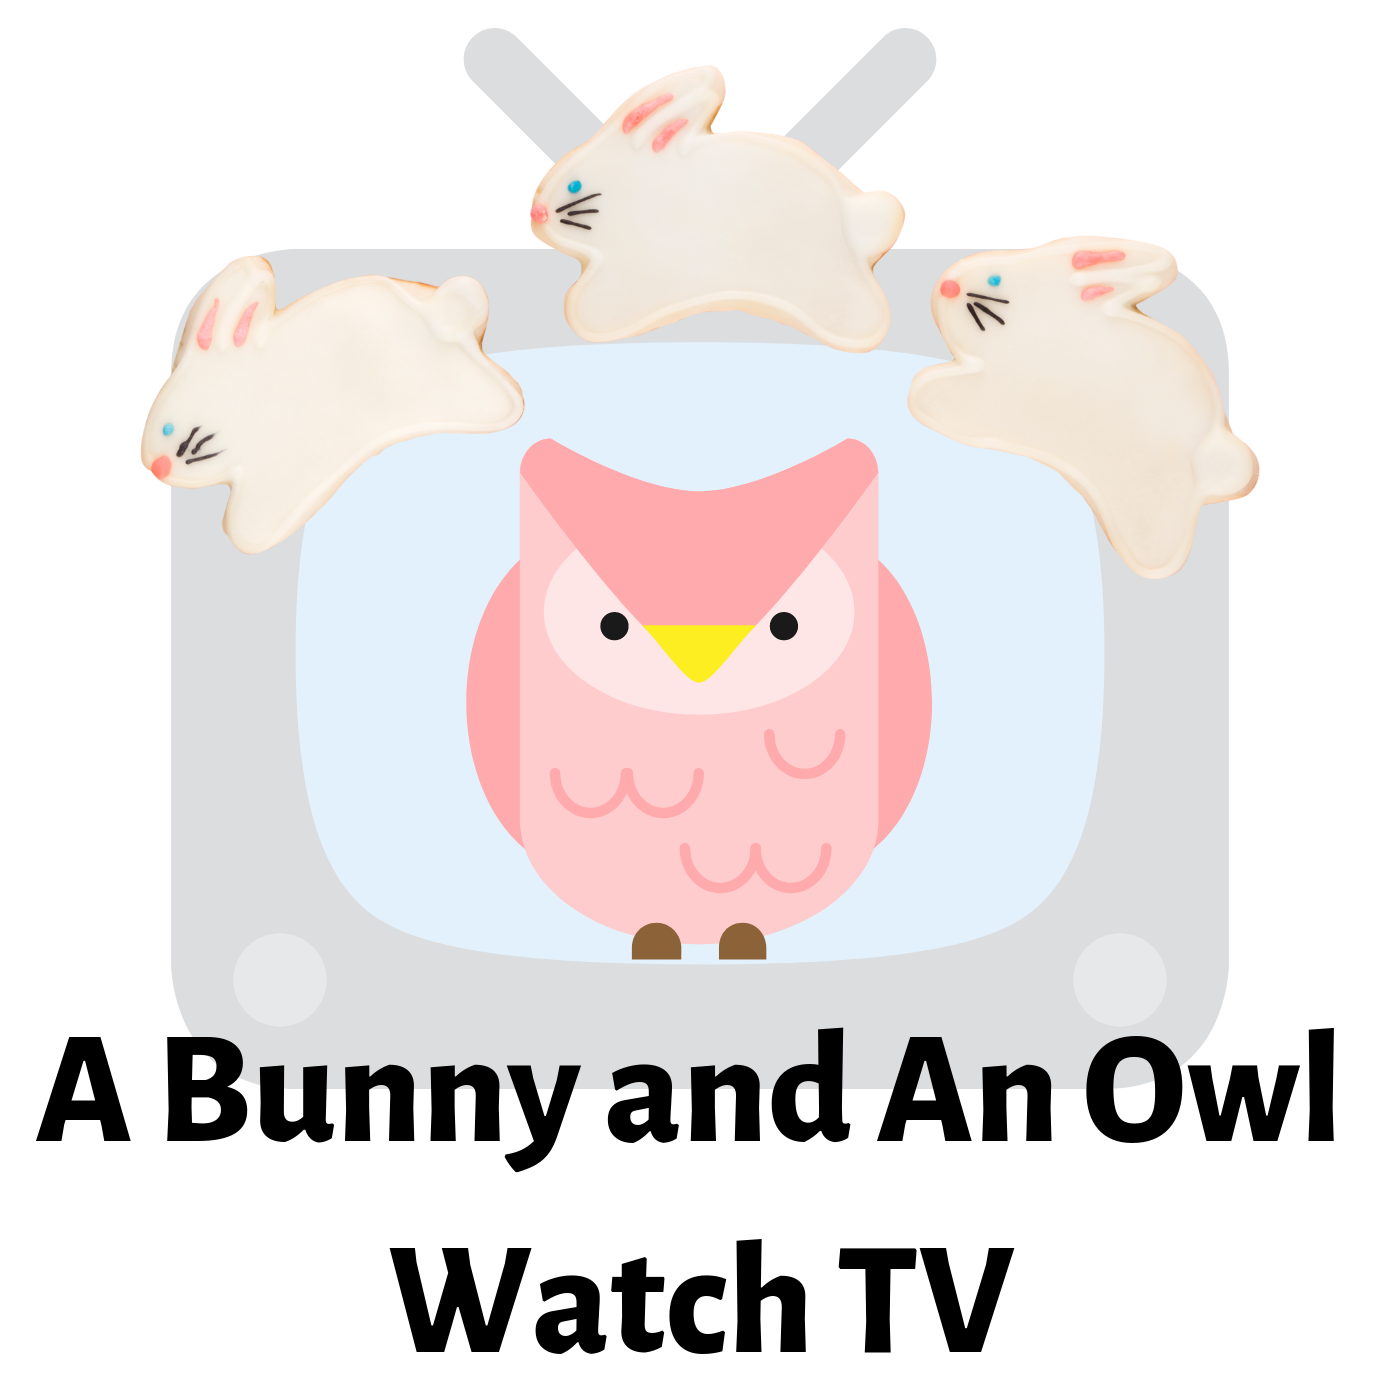 743 - A Bunny and Owl Watch TV